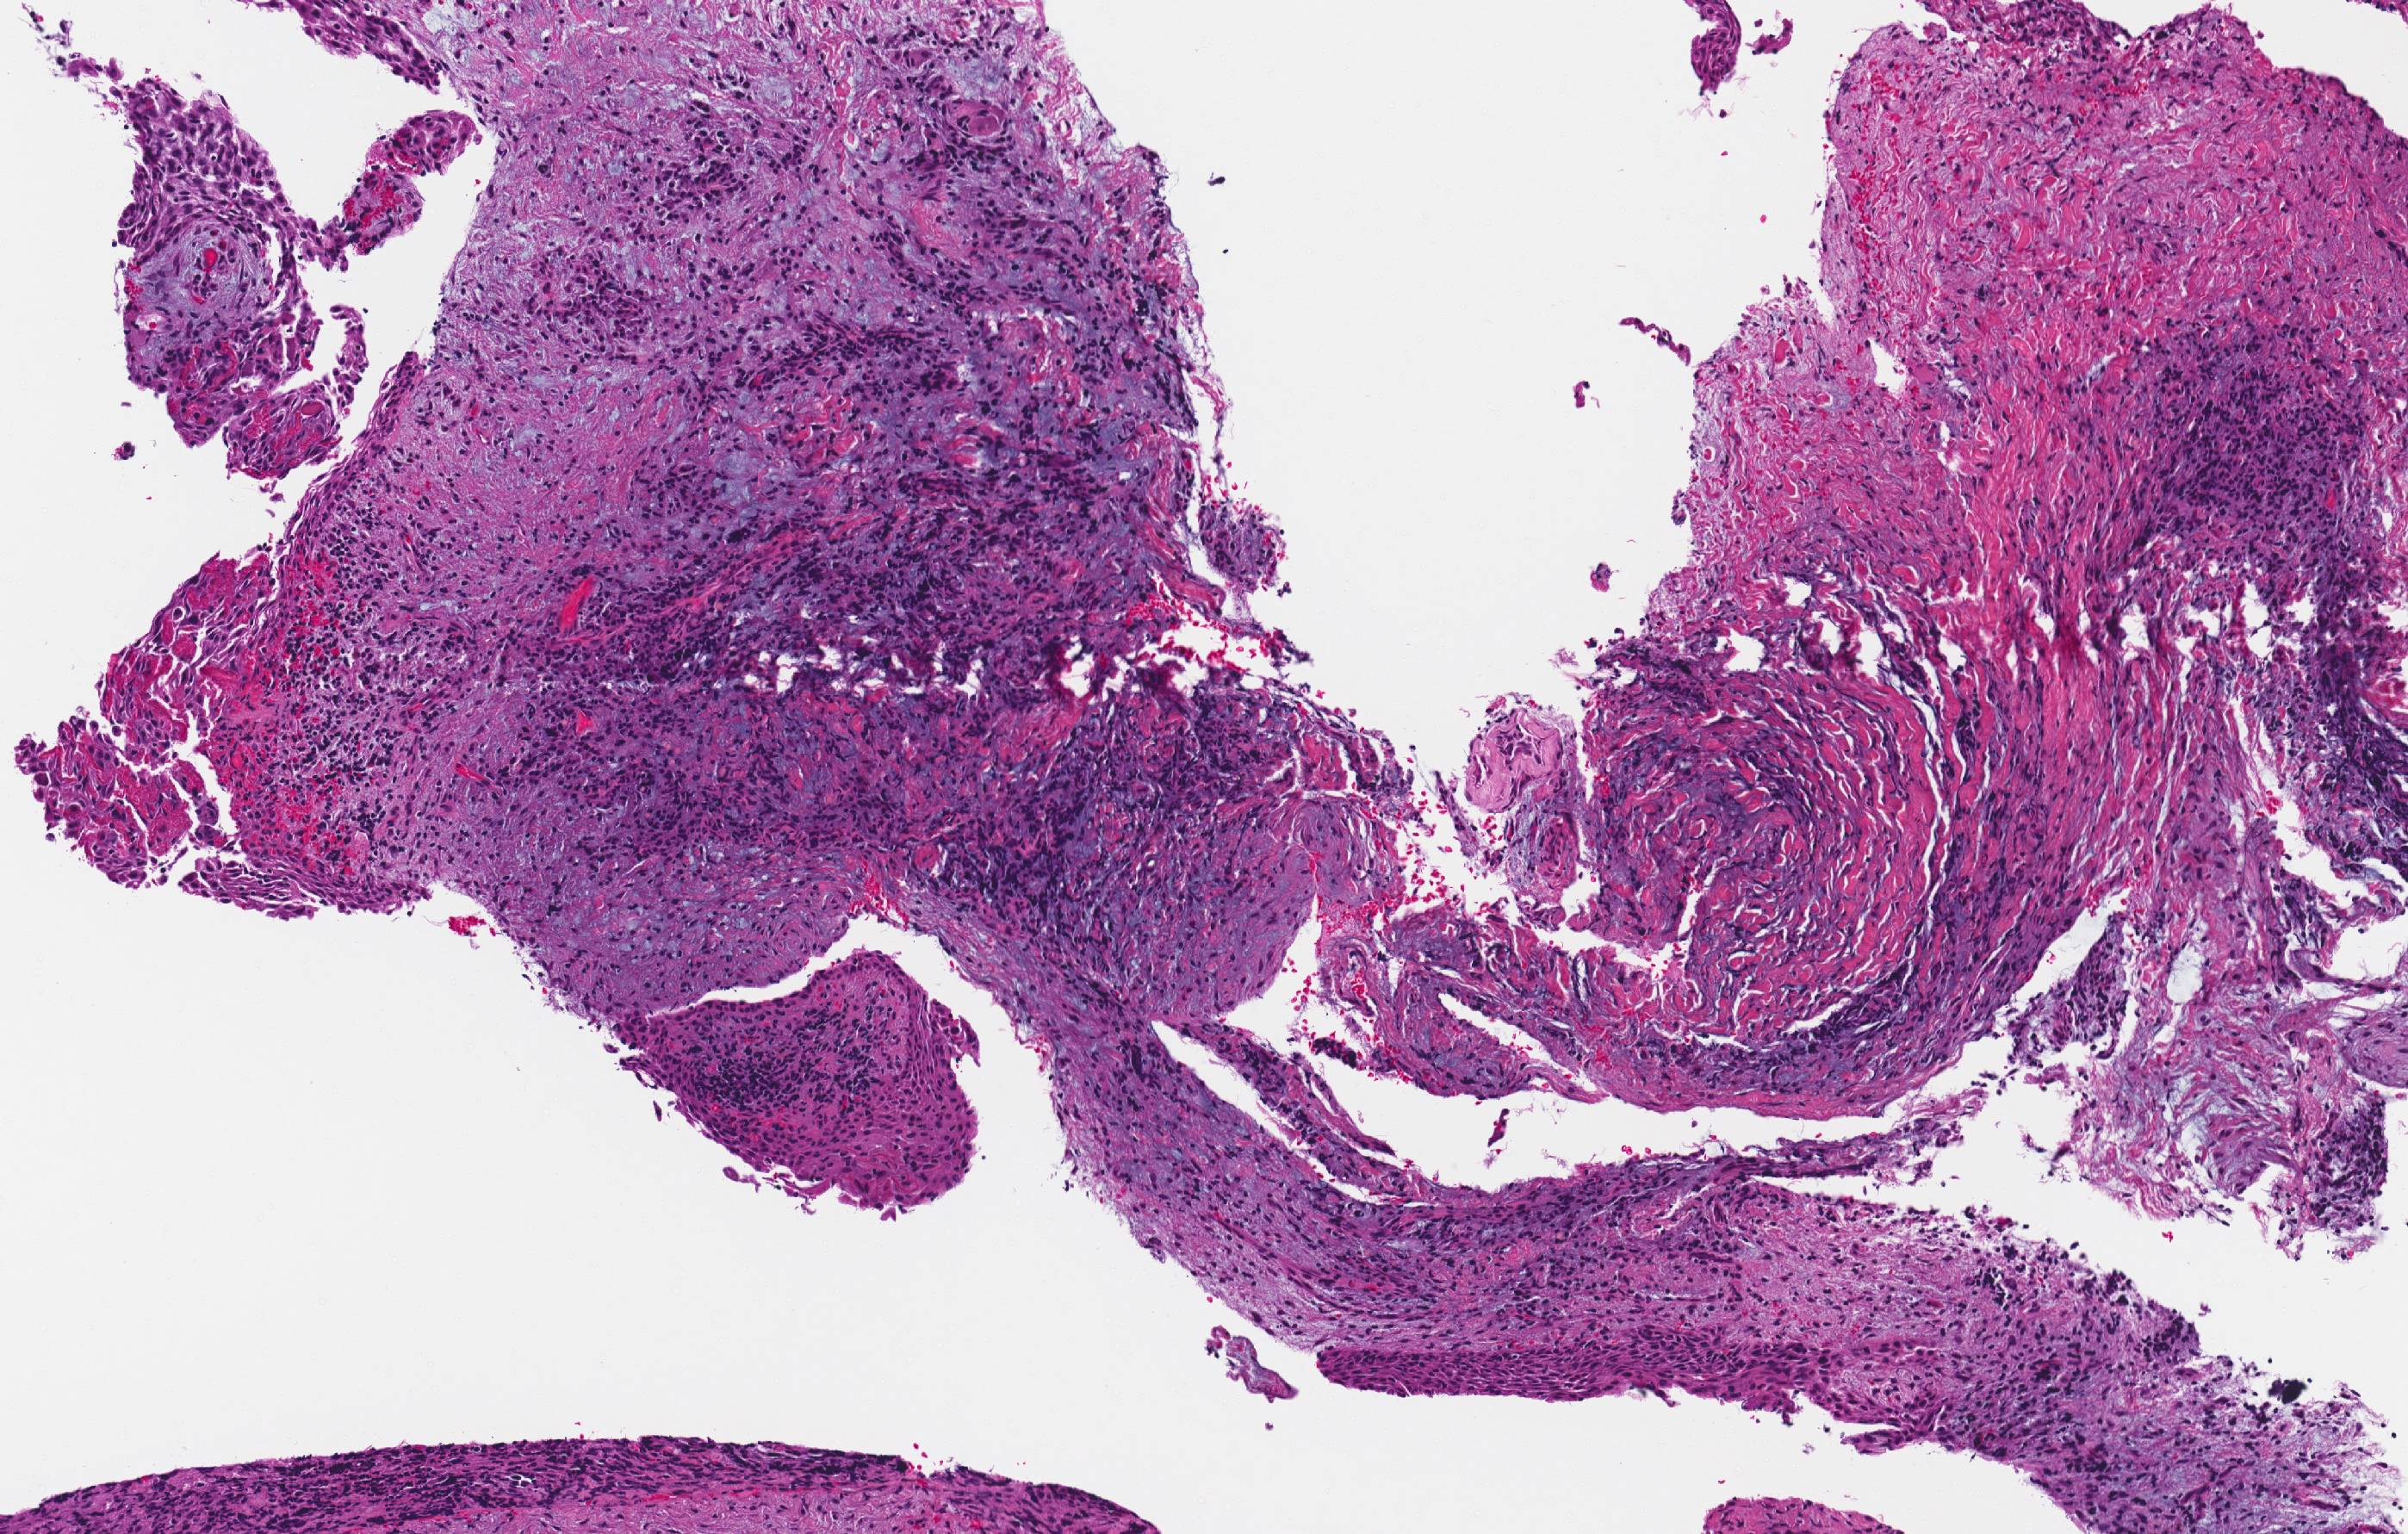 Inflammatory collateral cysts